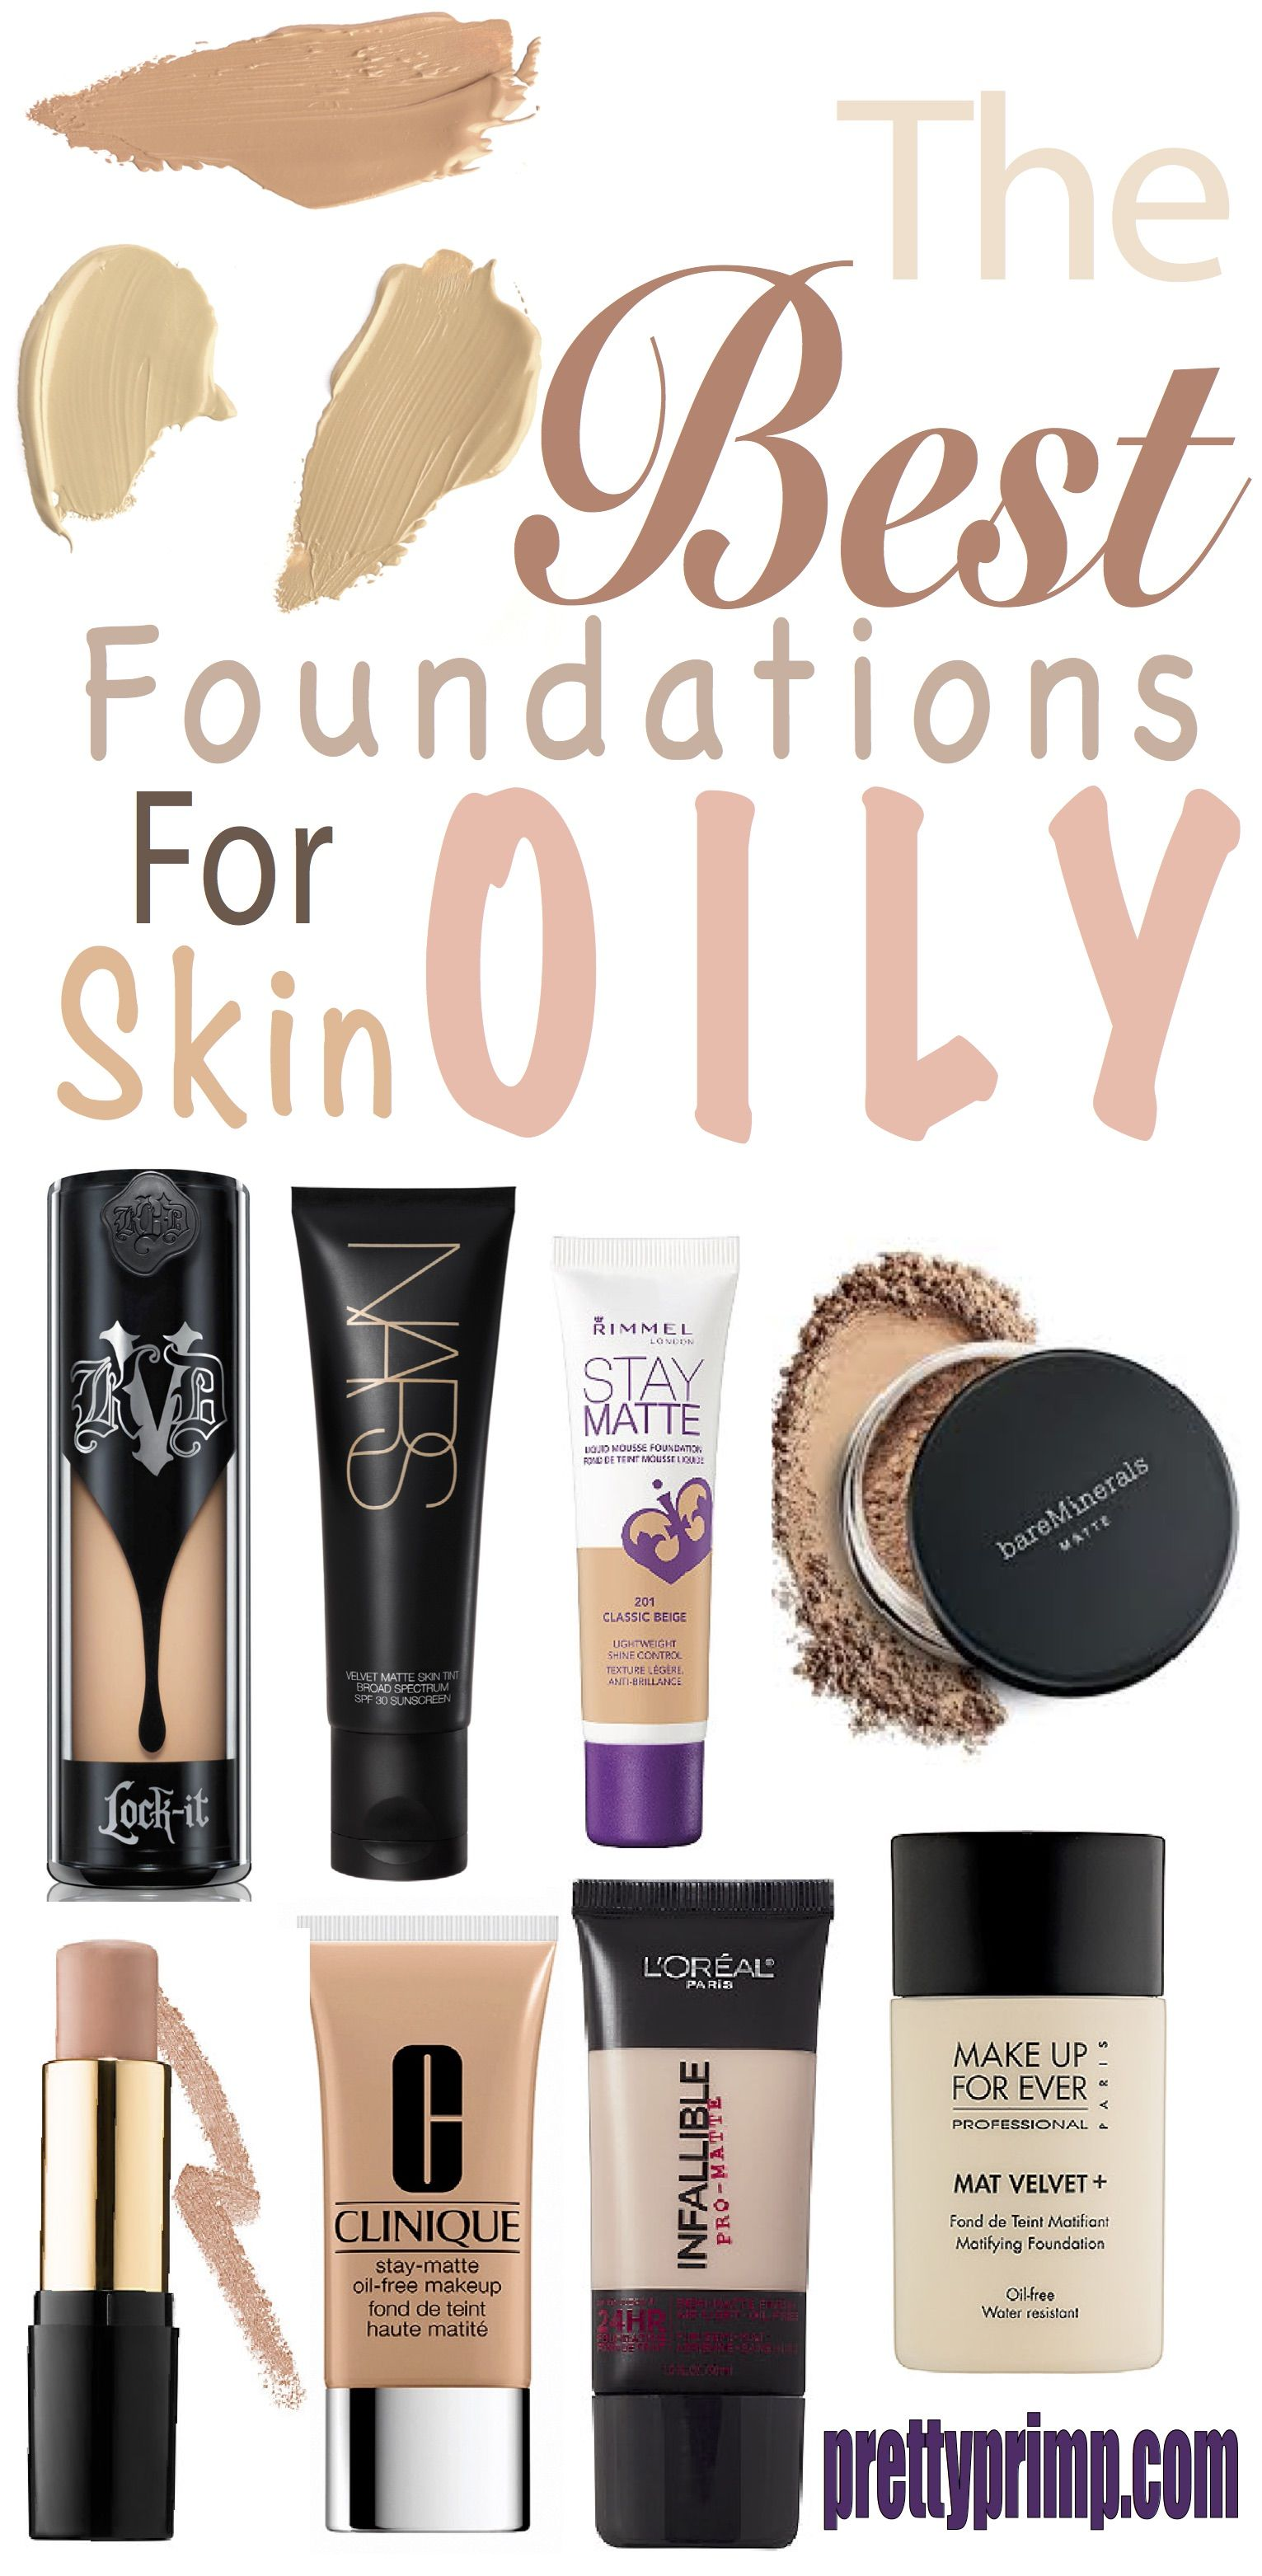 Best Matte Foundations To Keep You Shine Free Makeup Products Foundation The For All Oily Skin Girls Out There From Drugstore As Well High End